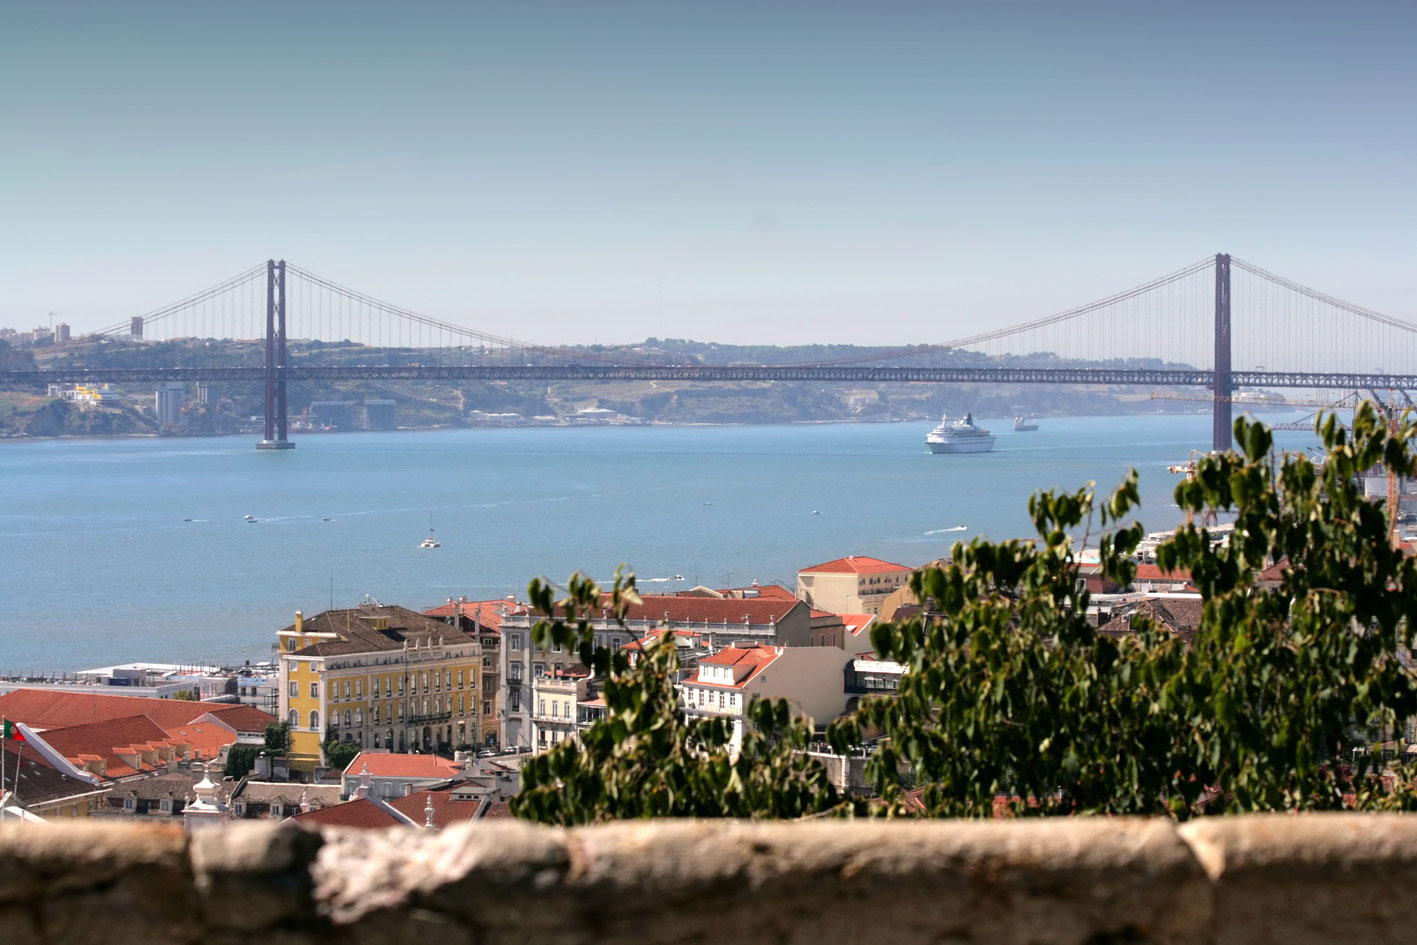 City centre or the suburbs? Close to the beach or near the mountains? Modern or traditional? Living in Lisbon reflects the city's dual personality in more ways than one